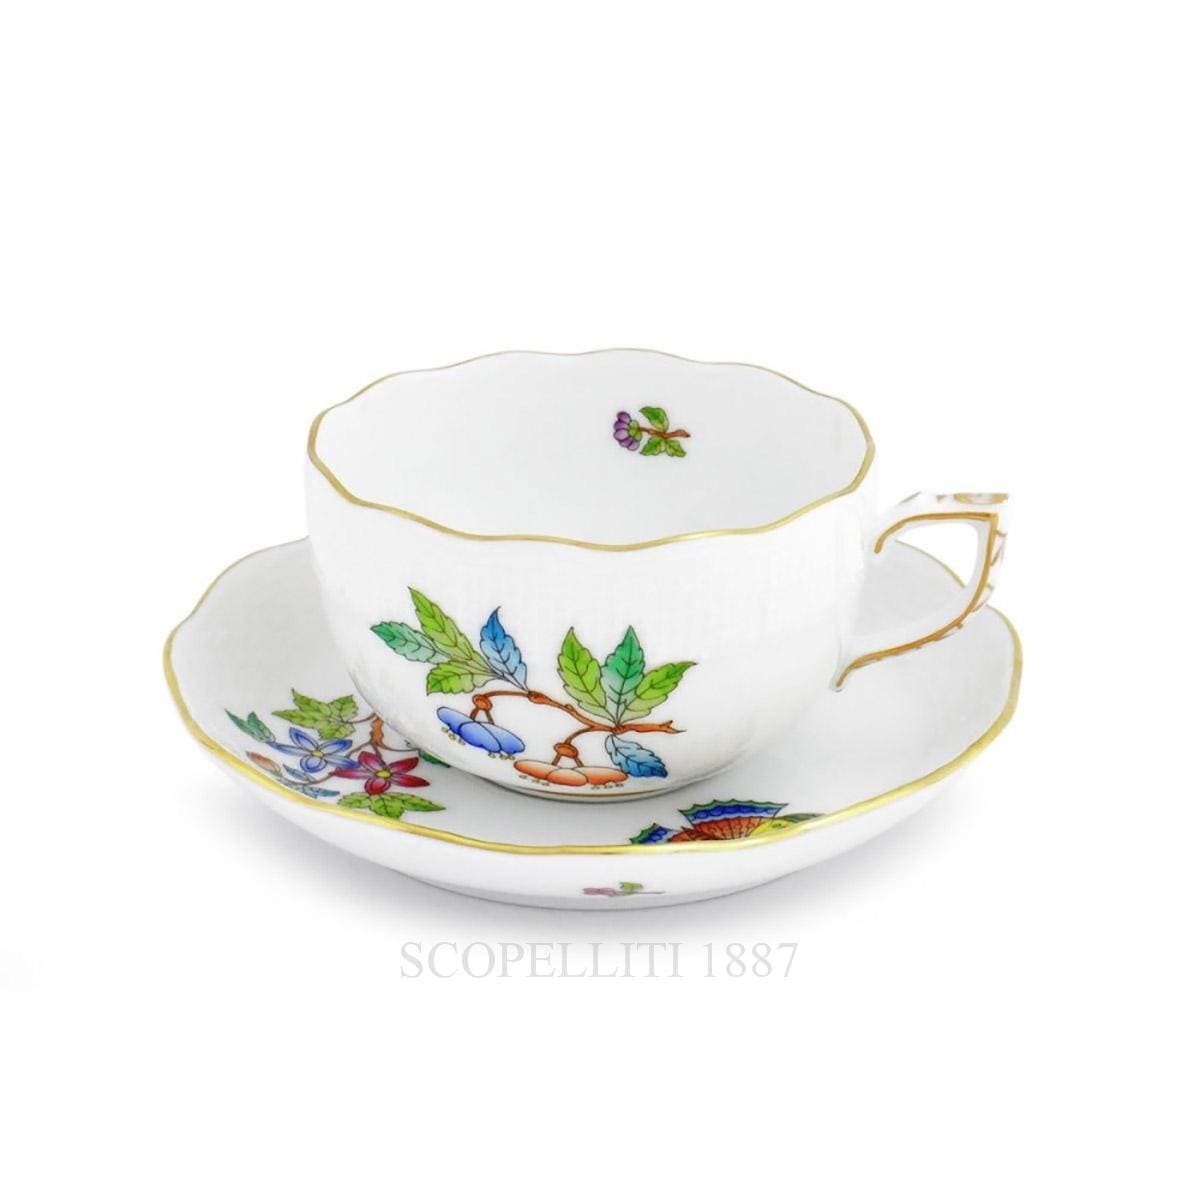 herend porcelain queen victoria tea cup and saucer